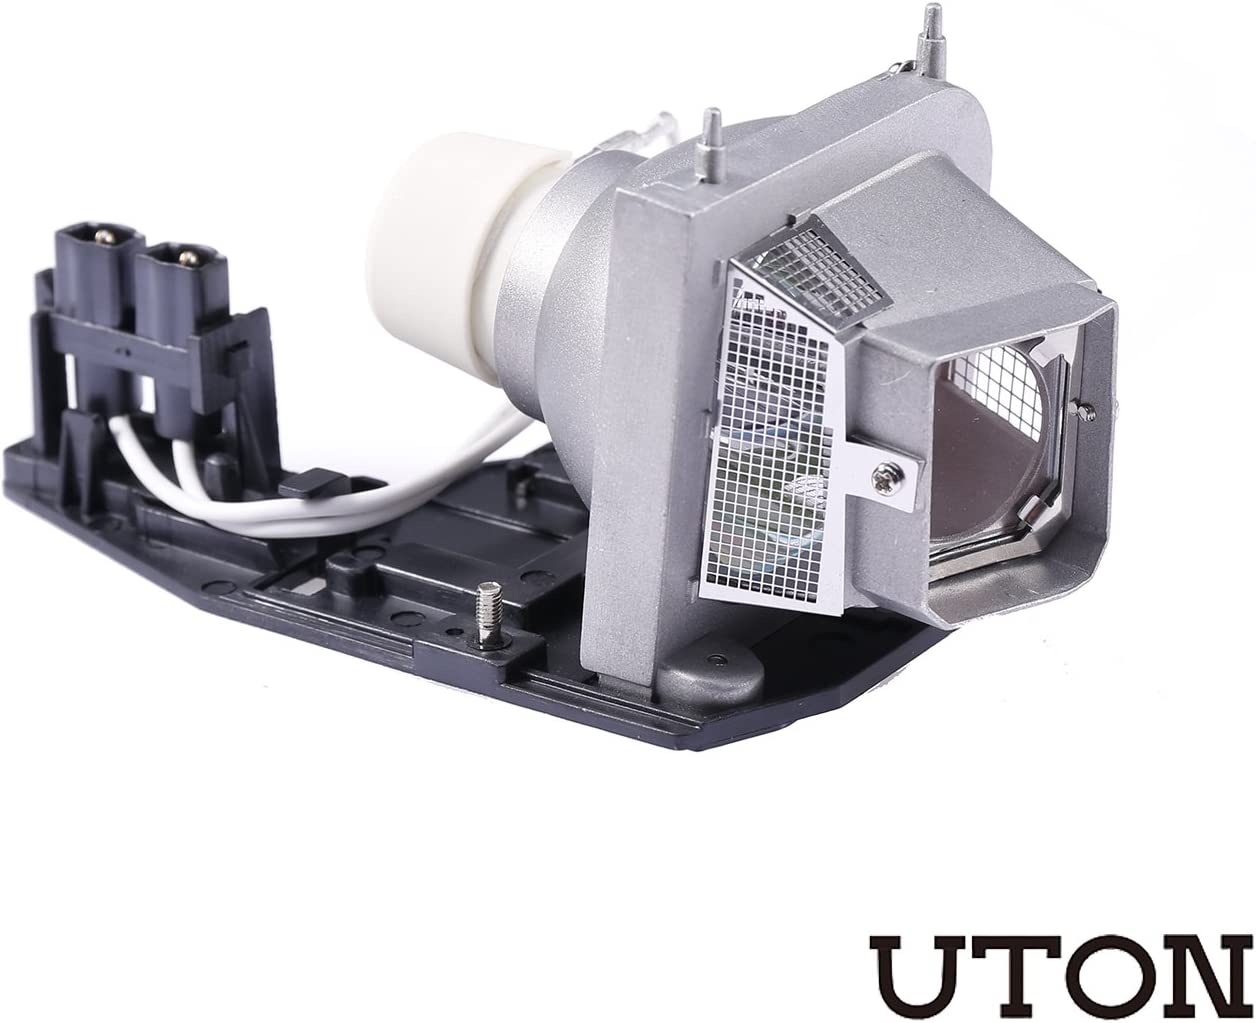 Uton 1510X Replacement Projector Lamp Bulb with Housing for DELL 1510X Projector